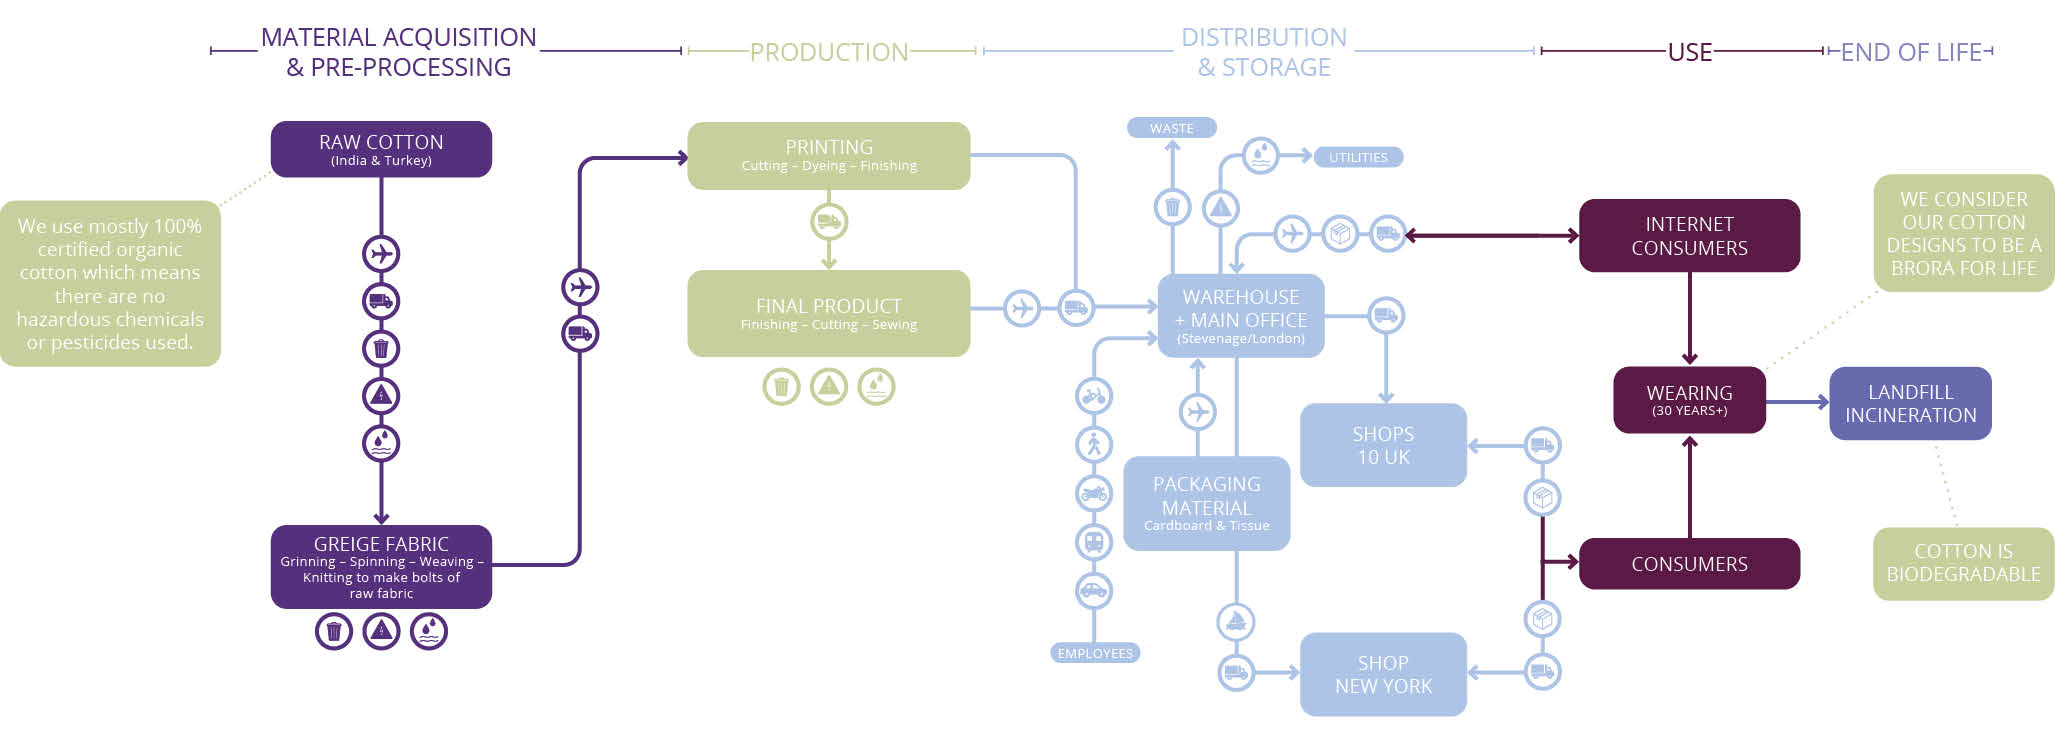 lifecycle-of-our-cotton-2057-750-105kb